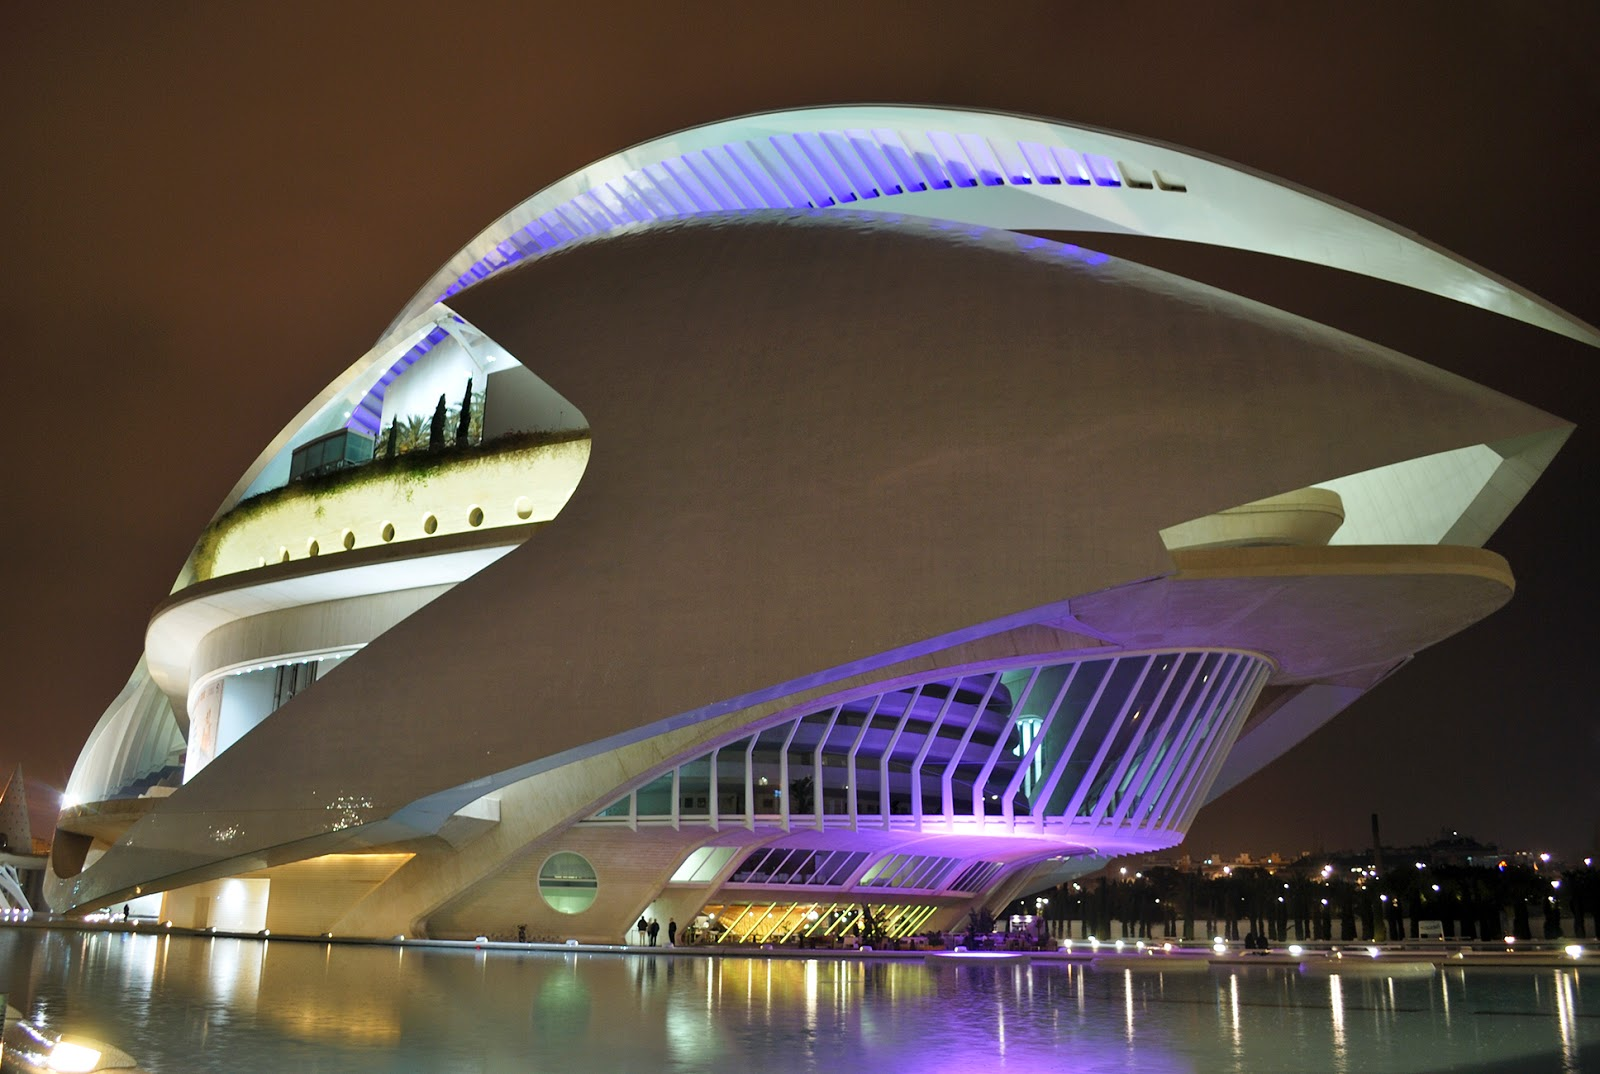 ciudad de las artes y las ciencias valencia city of arts and science nocturno noche night